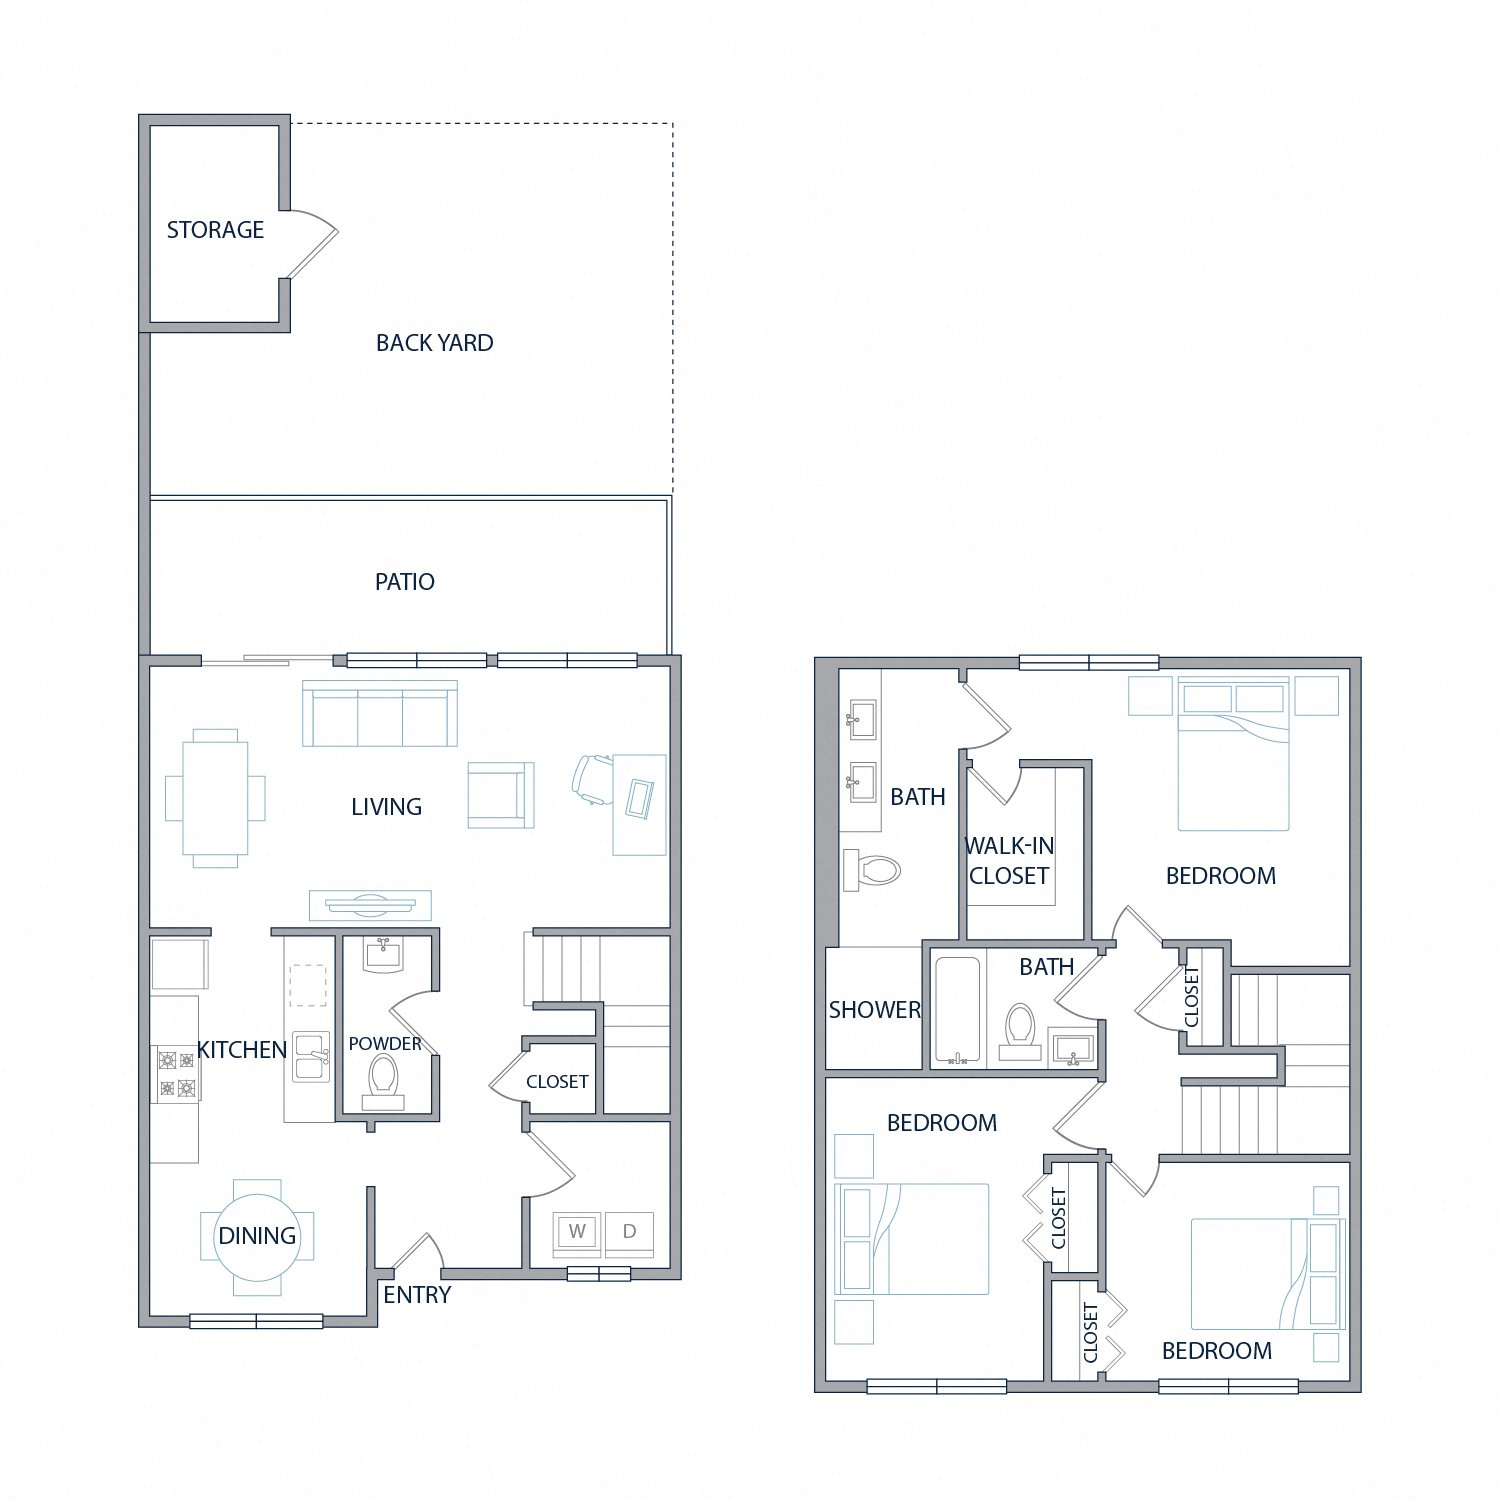 Diagram of the Meridian floor plan. Two stories with three bedrooms, two and a half bathrooms, a laundry room, patio, and backyard with outdoor storage.